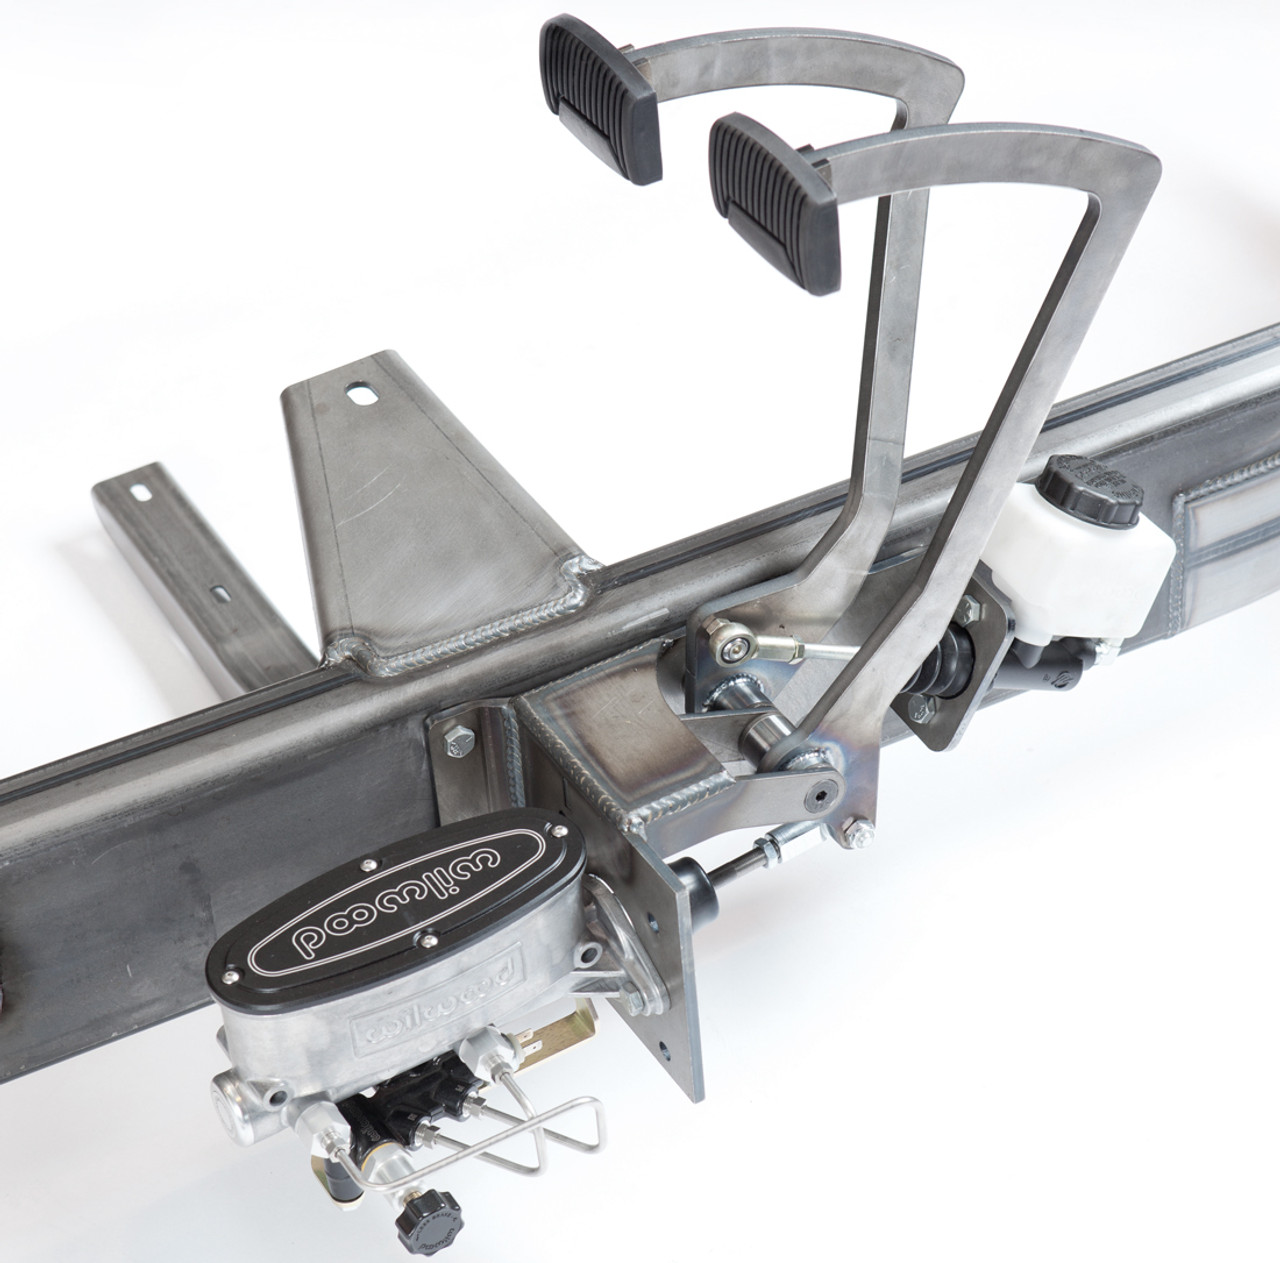 Art Morrison Chevy Truck Welded Chassis | Quarter-Max